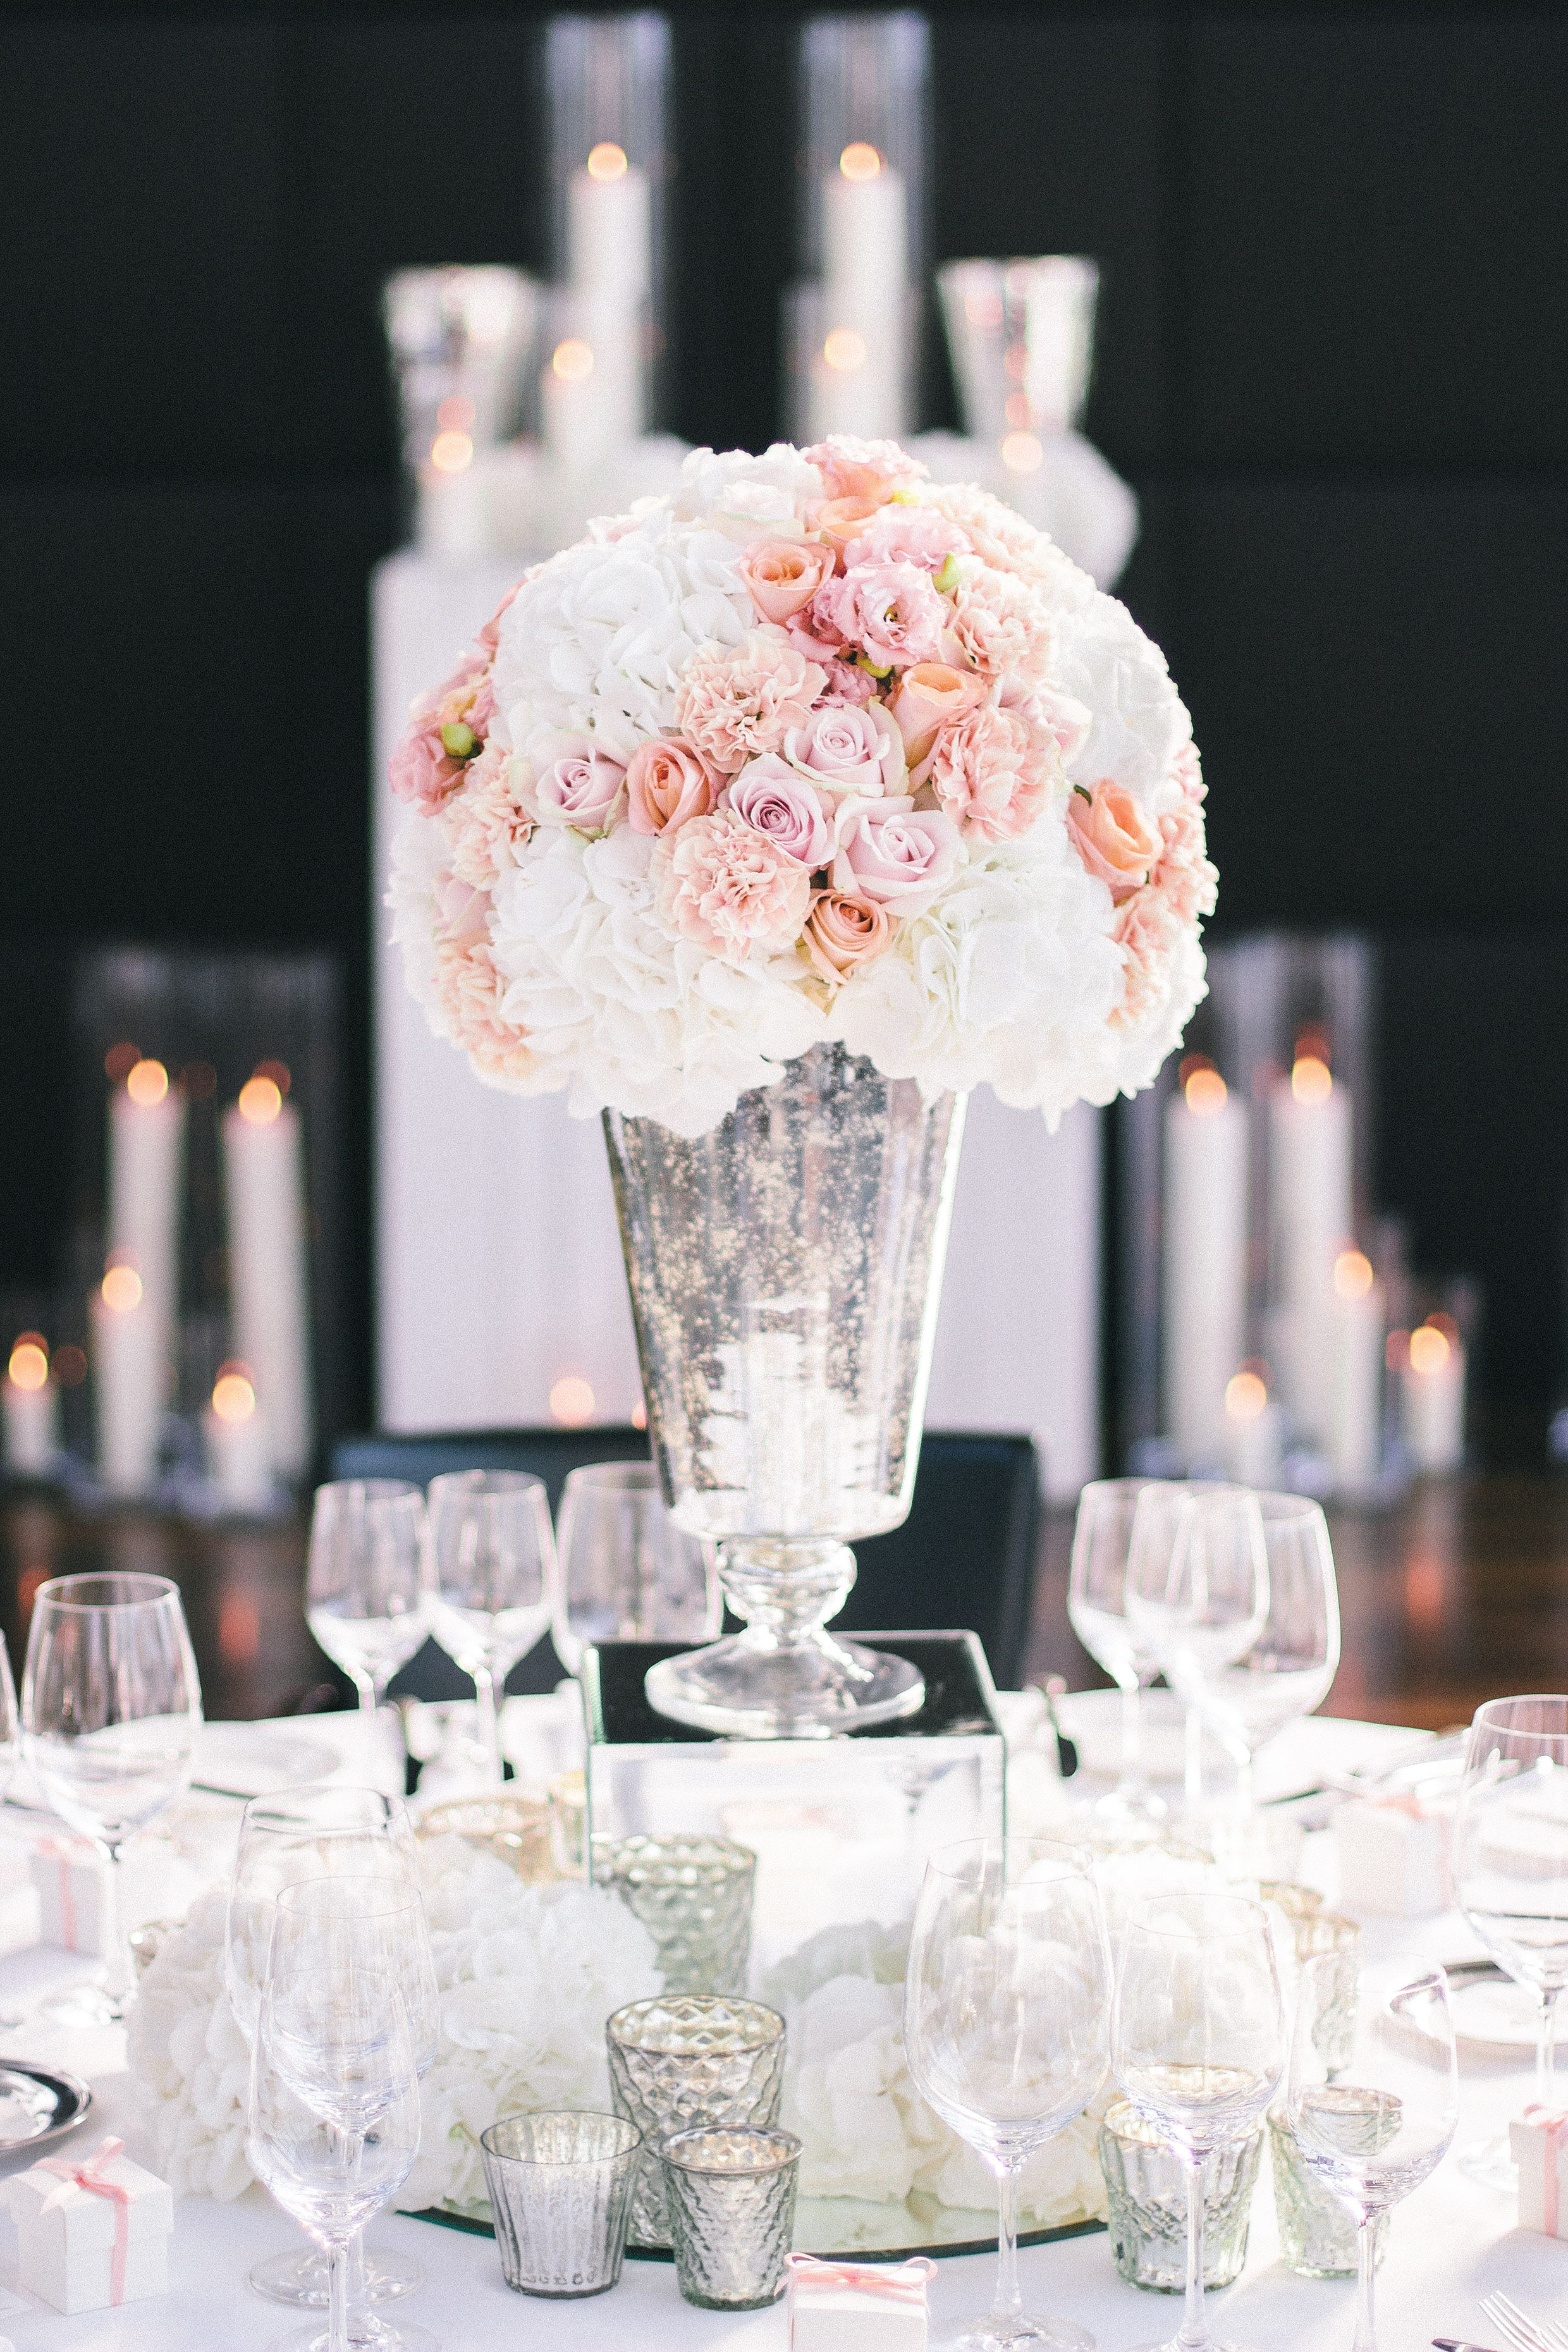 modern floral wedding design in shades of blush pink apricot